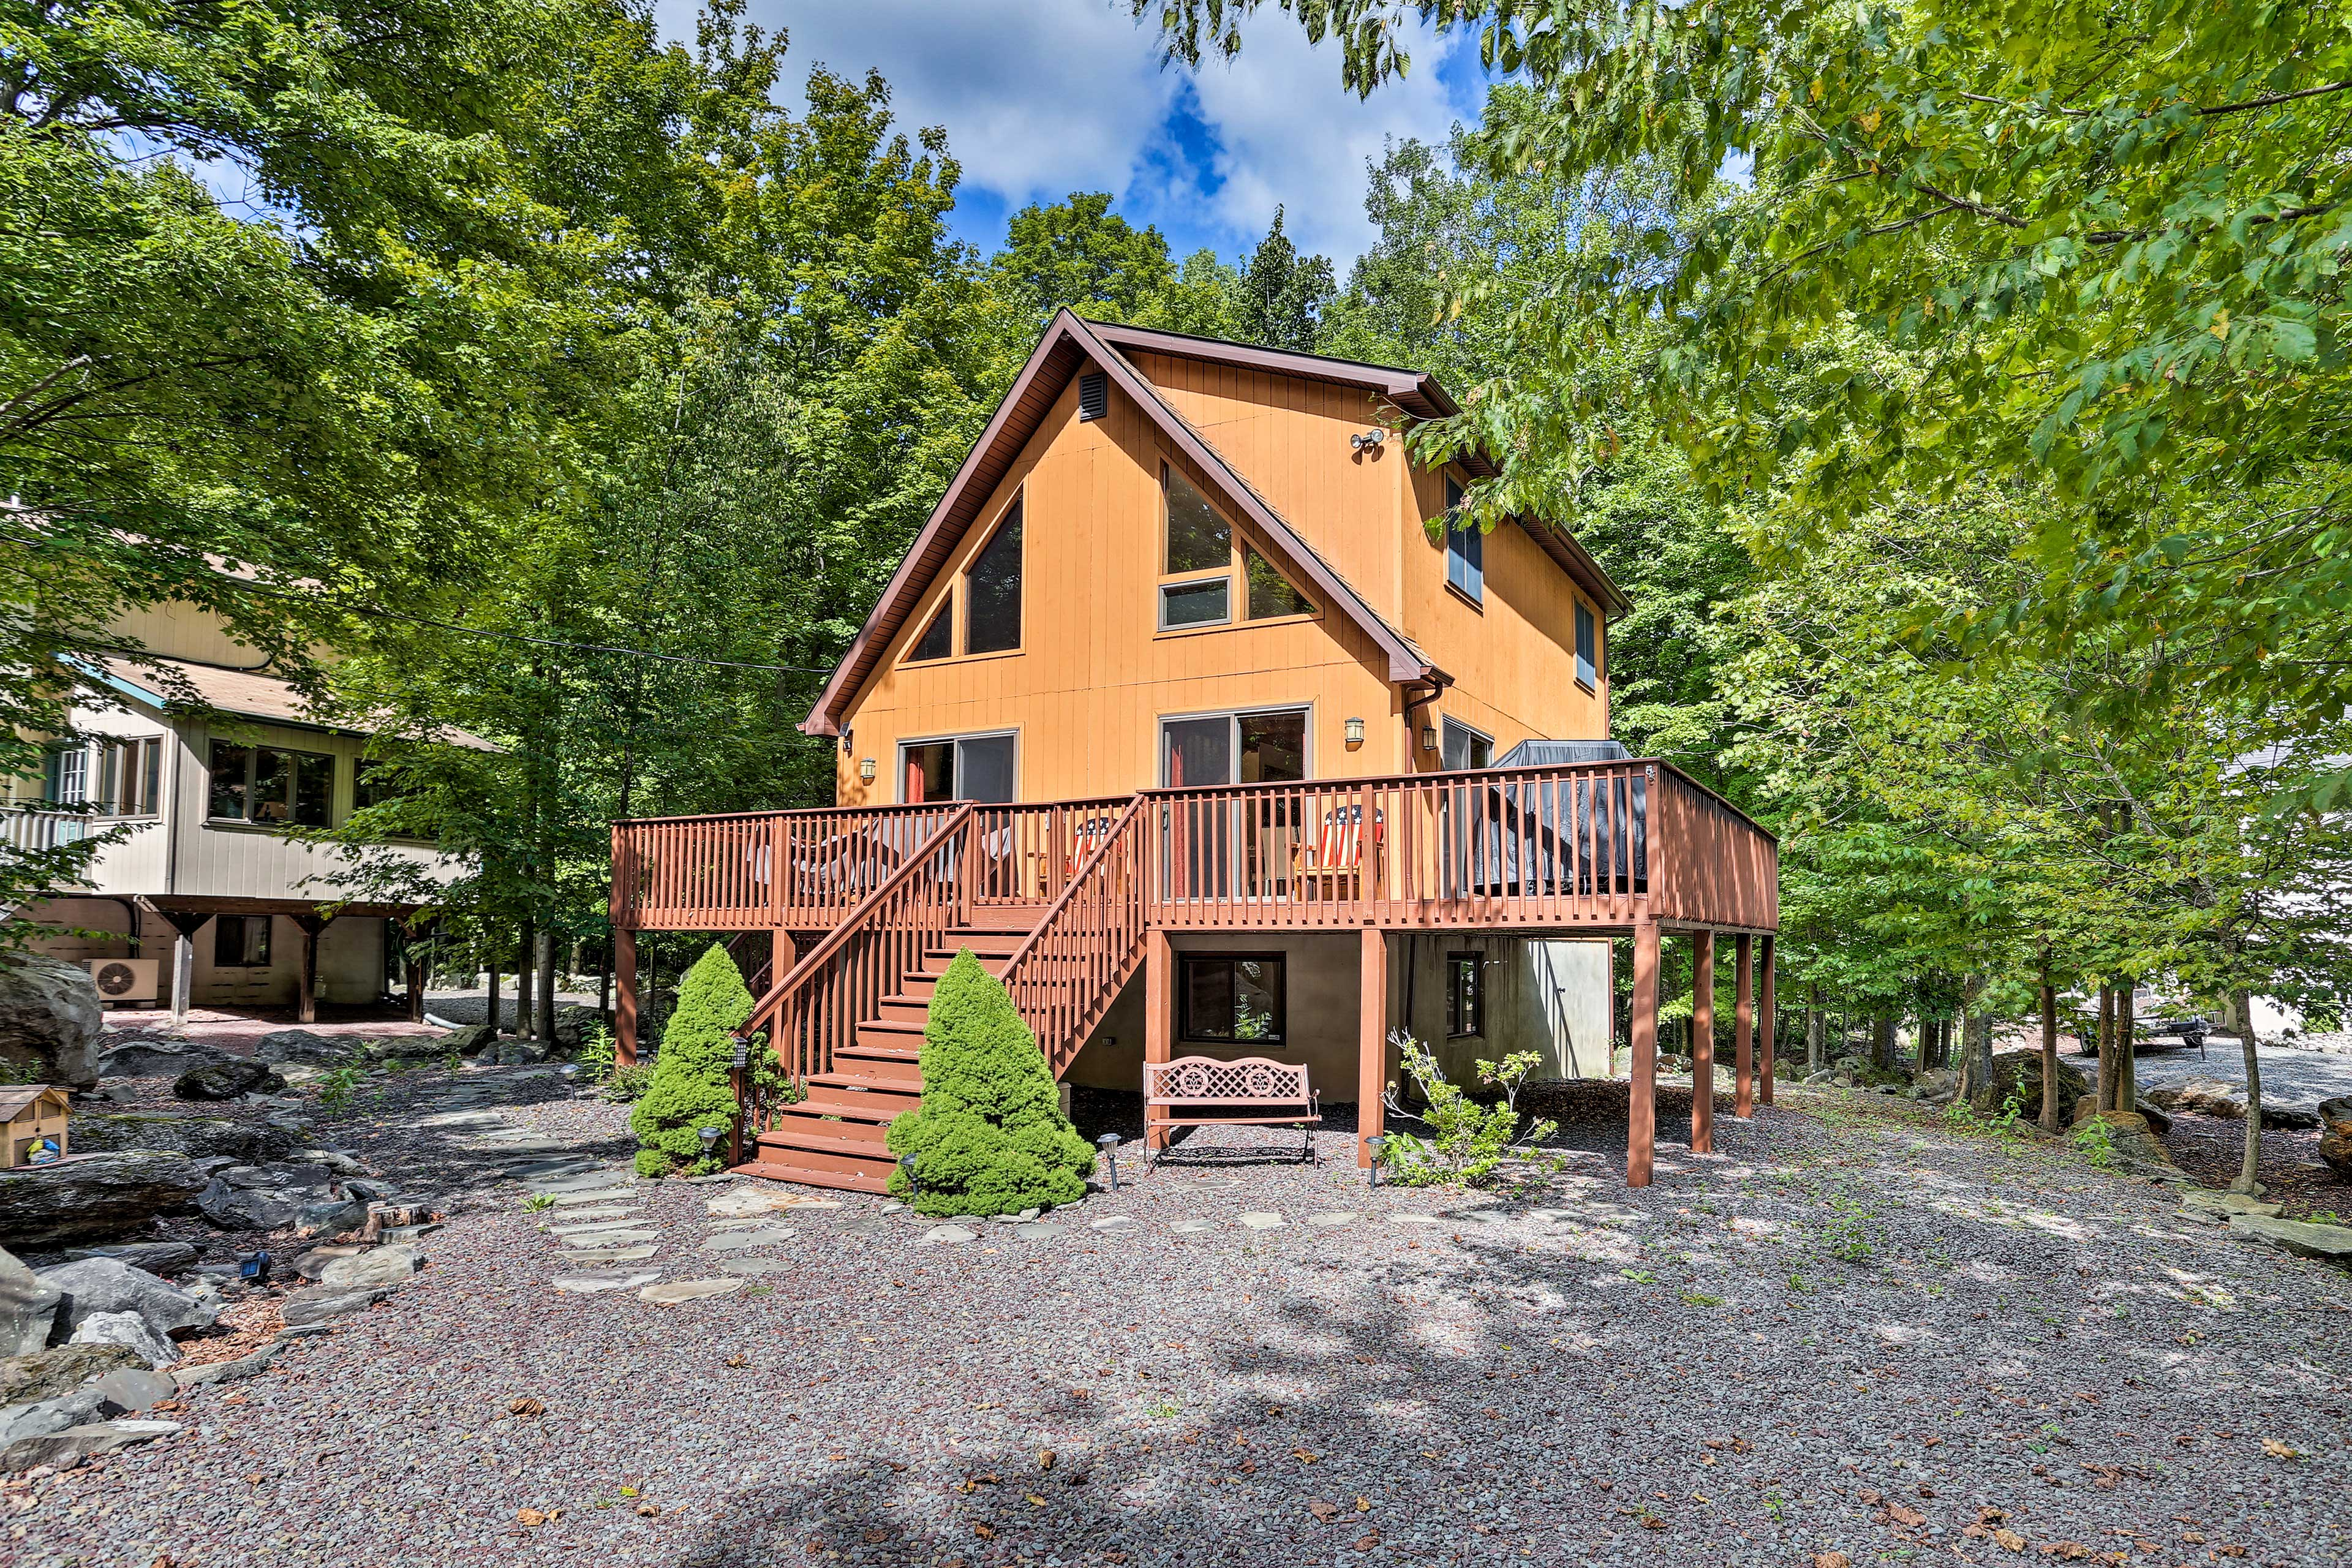 Bring the whole family to this Lake Ariel vacation rental!